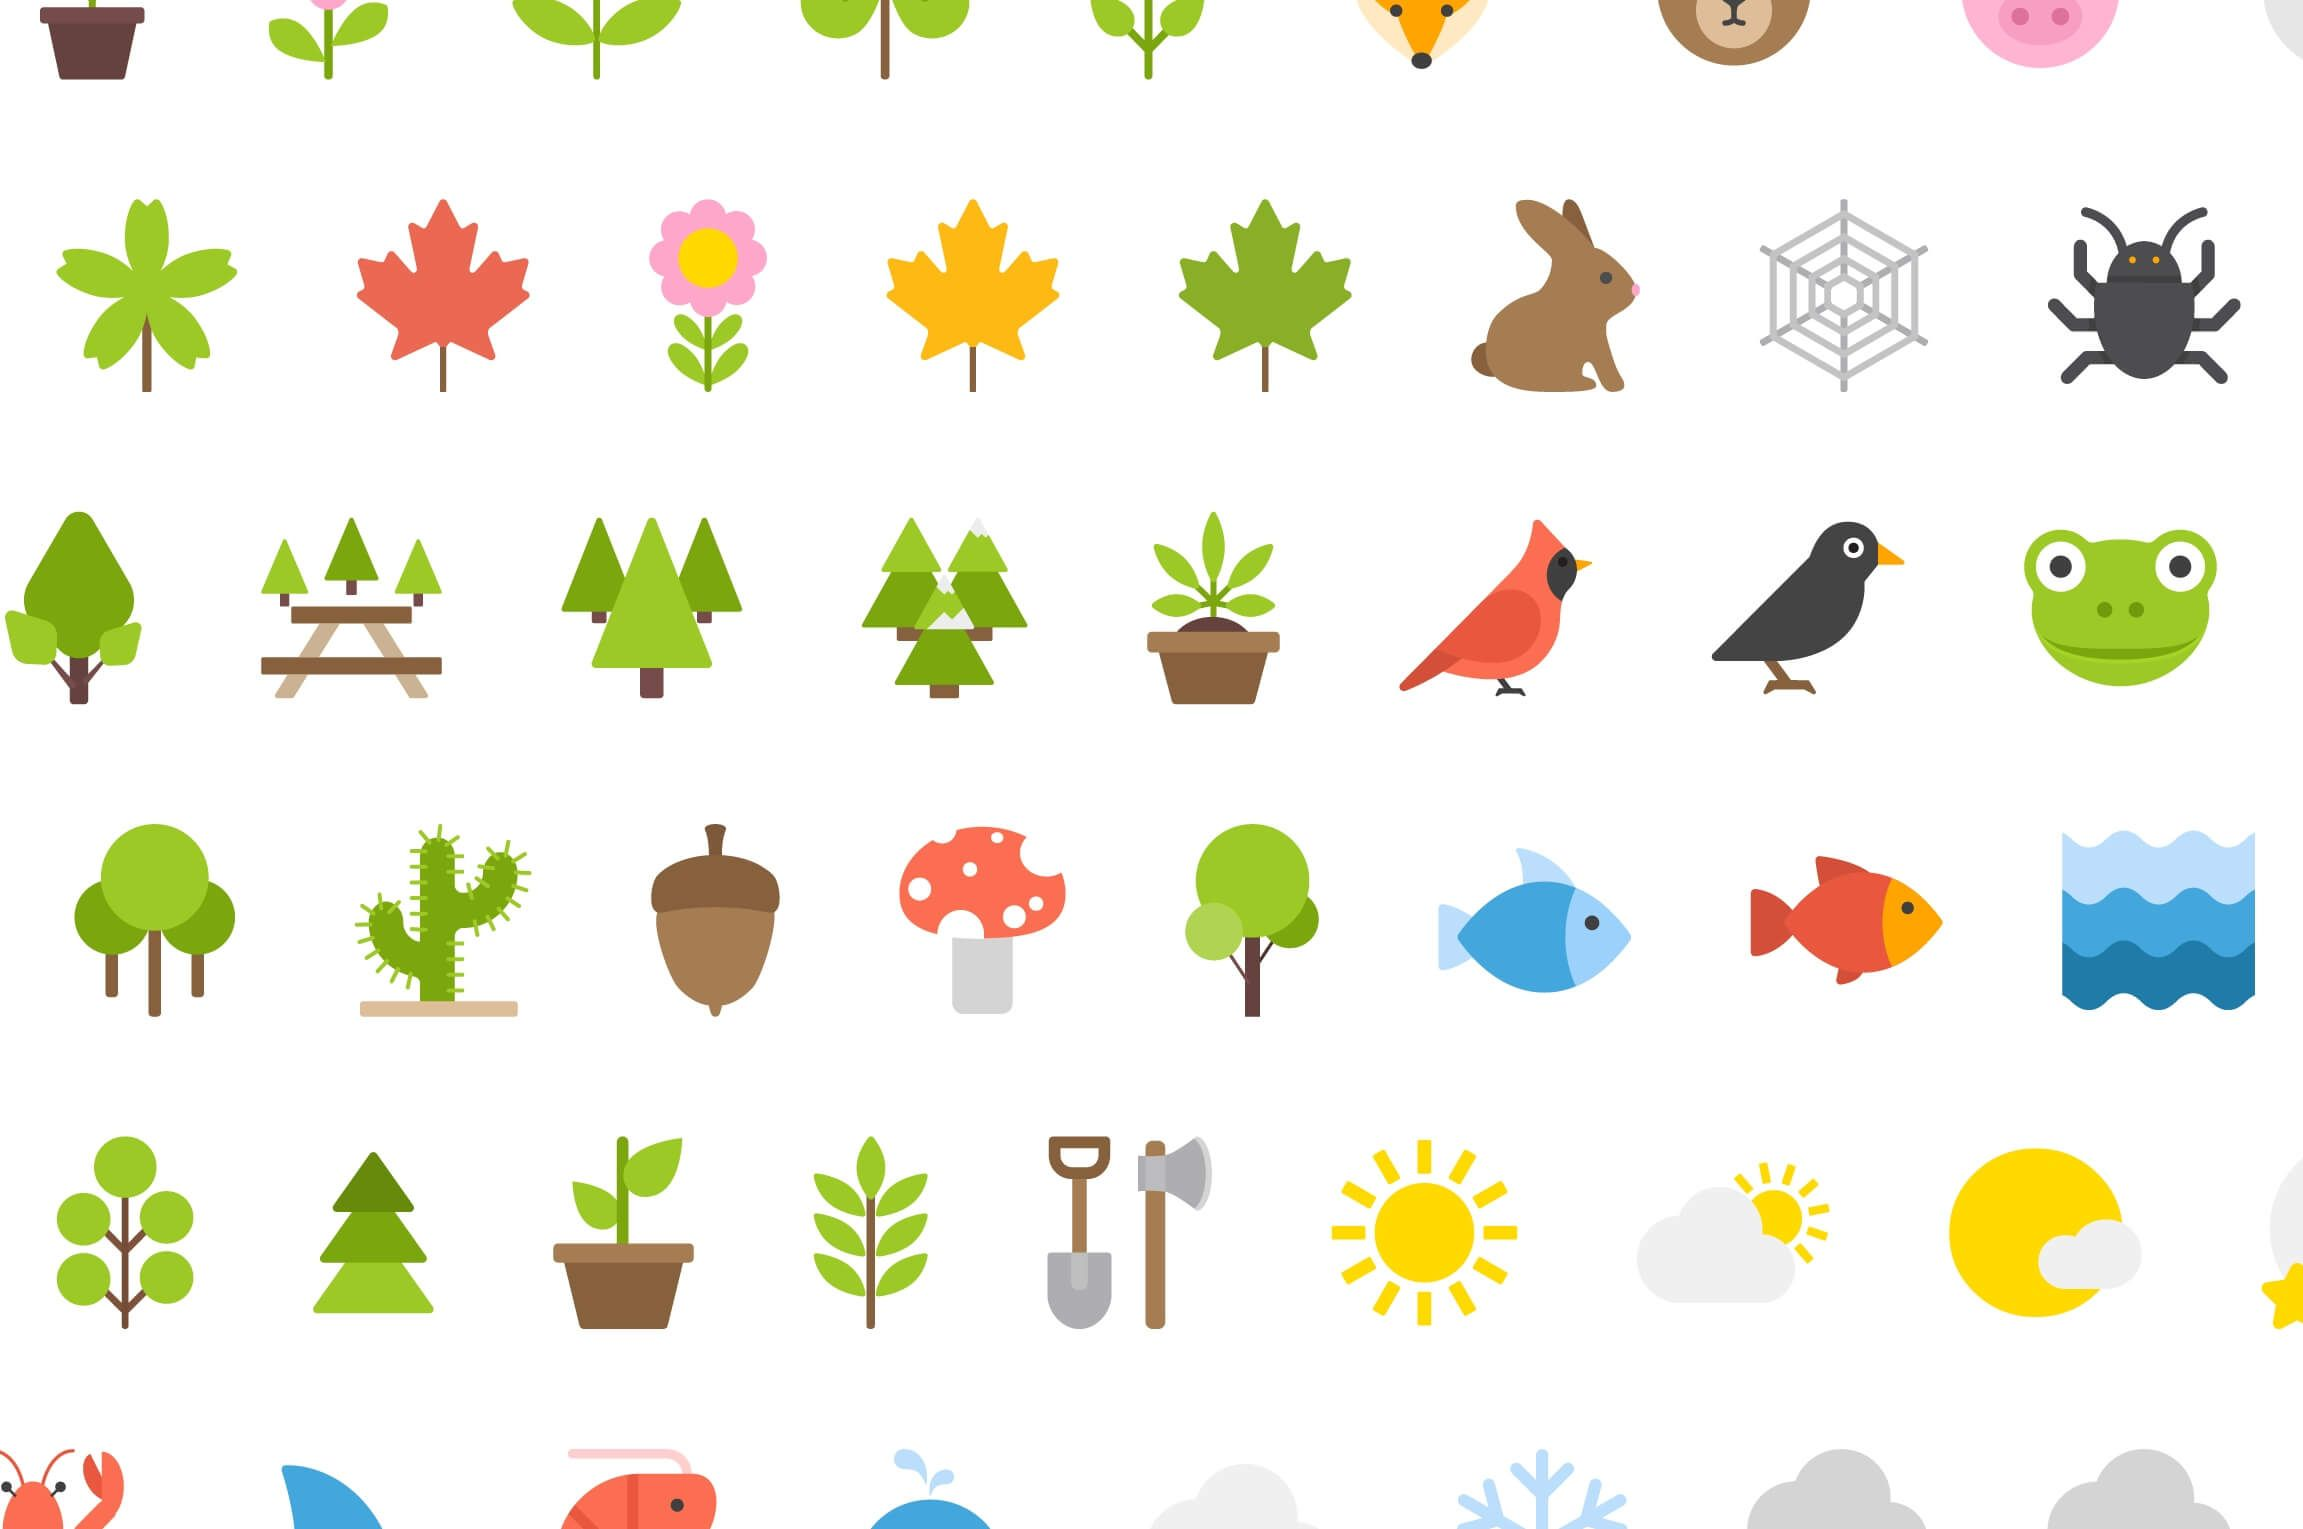 Free Download 100 Nature Icons by Vecteezy NOW ON Free